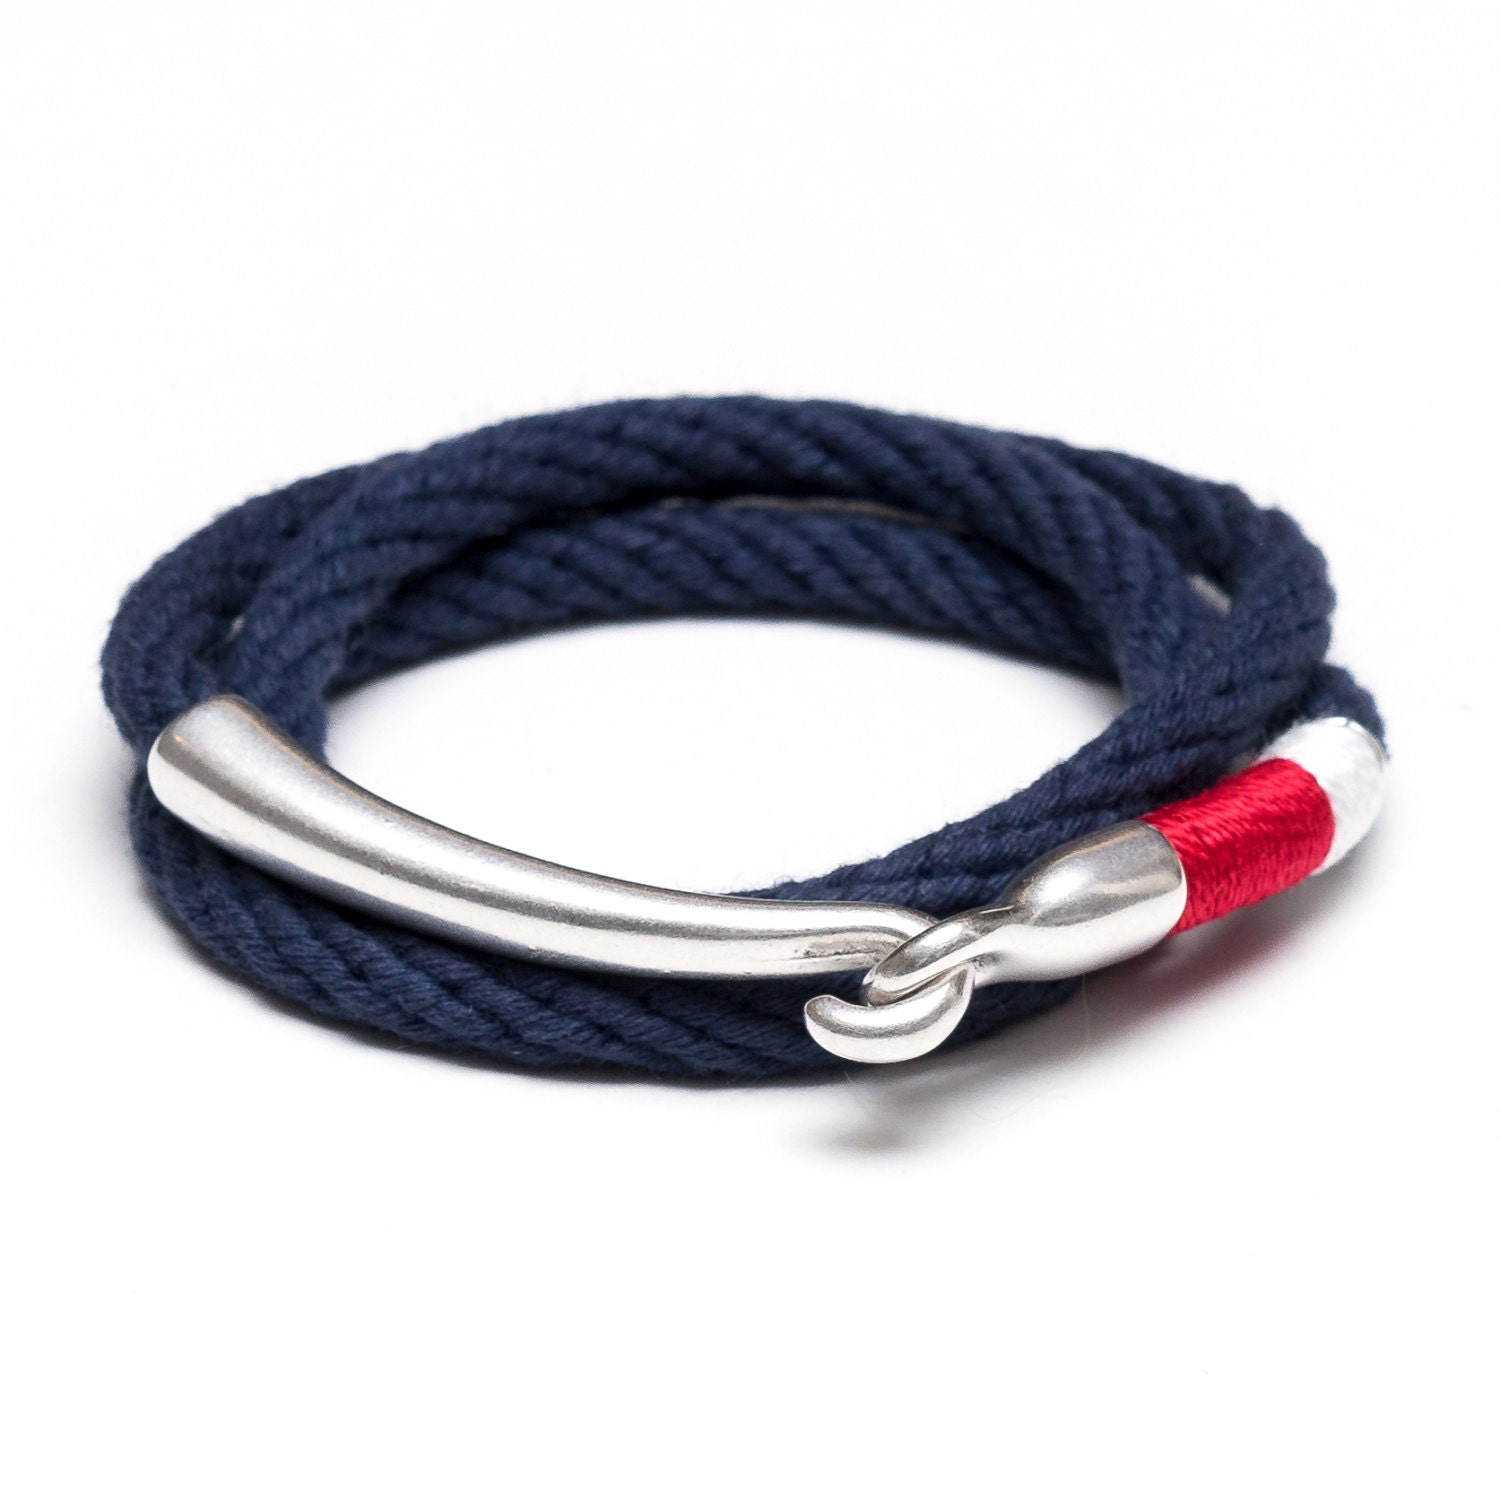 bright bracelet amazon rope super design nautical men gorgeous black surf double wristband gold australia ideas mens weave leather gq com cord bracelets strap uk